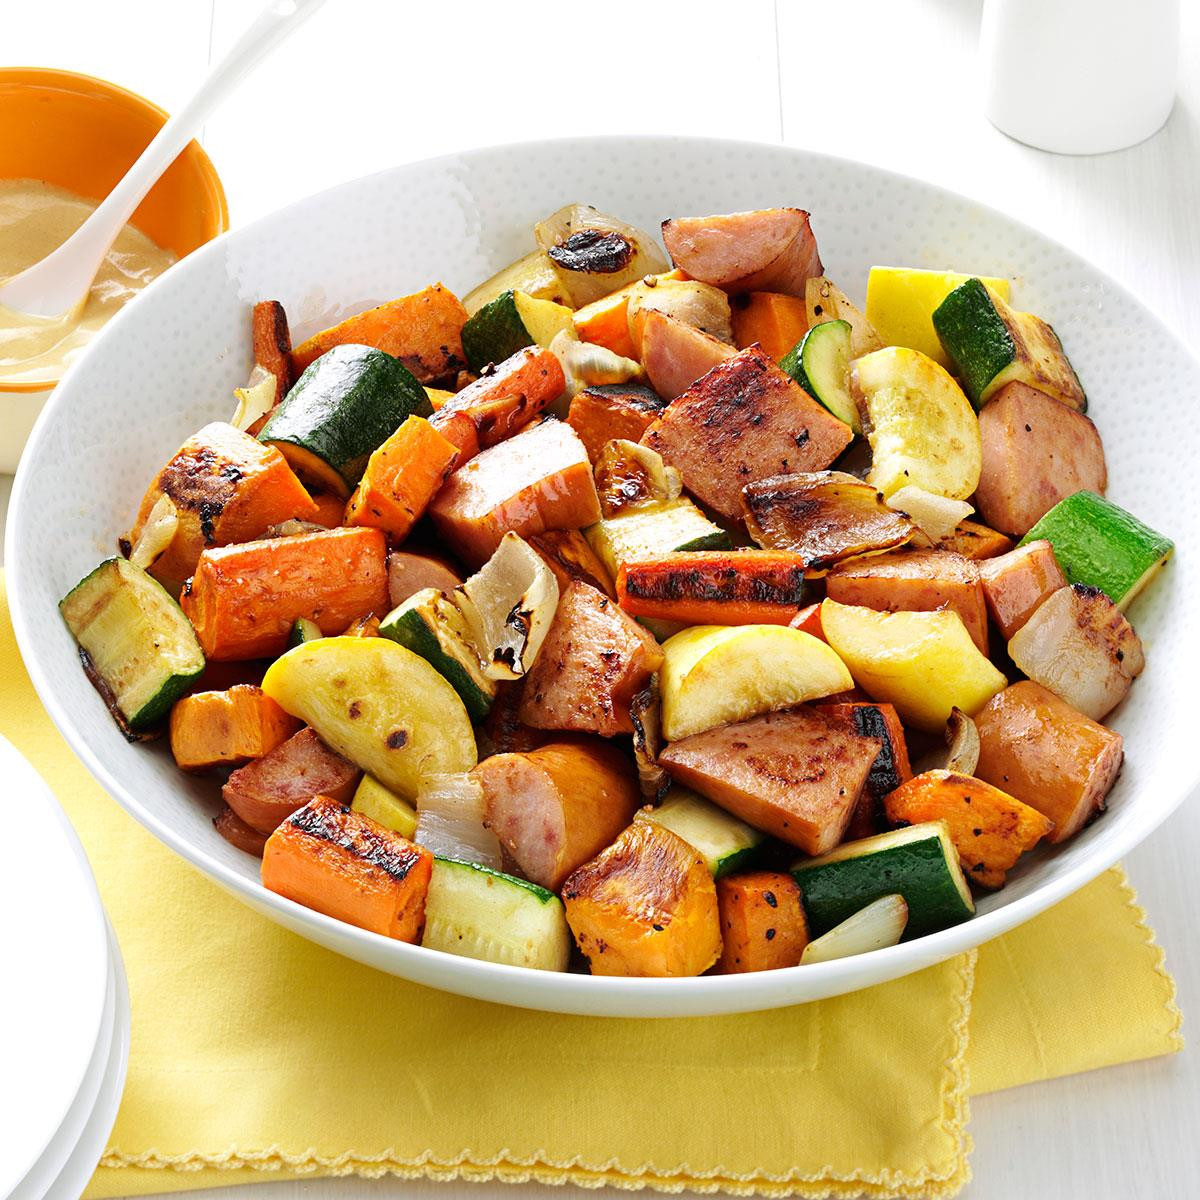 Roasted Vegetables Recipes  Roasted Kielbasa & Ve ables Recipe